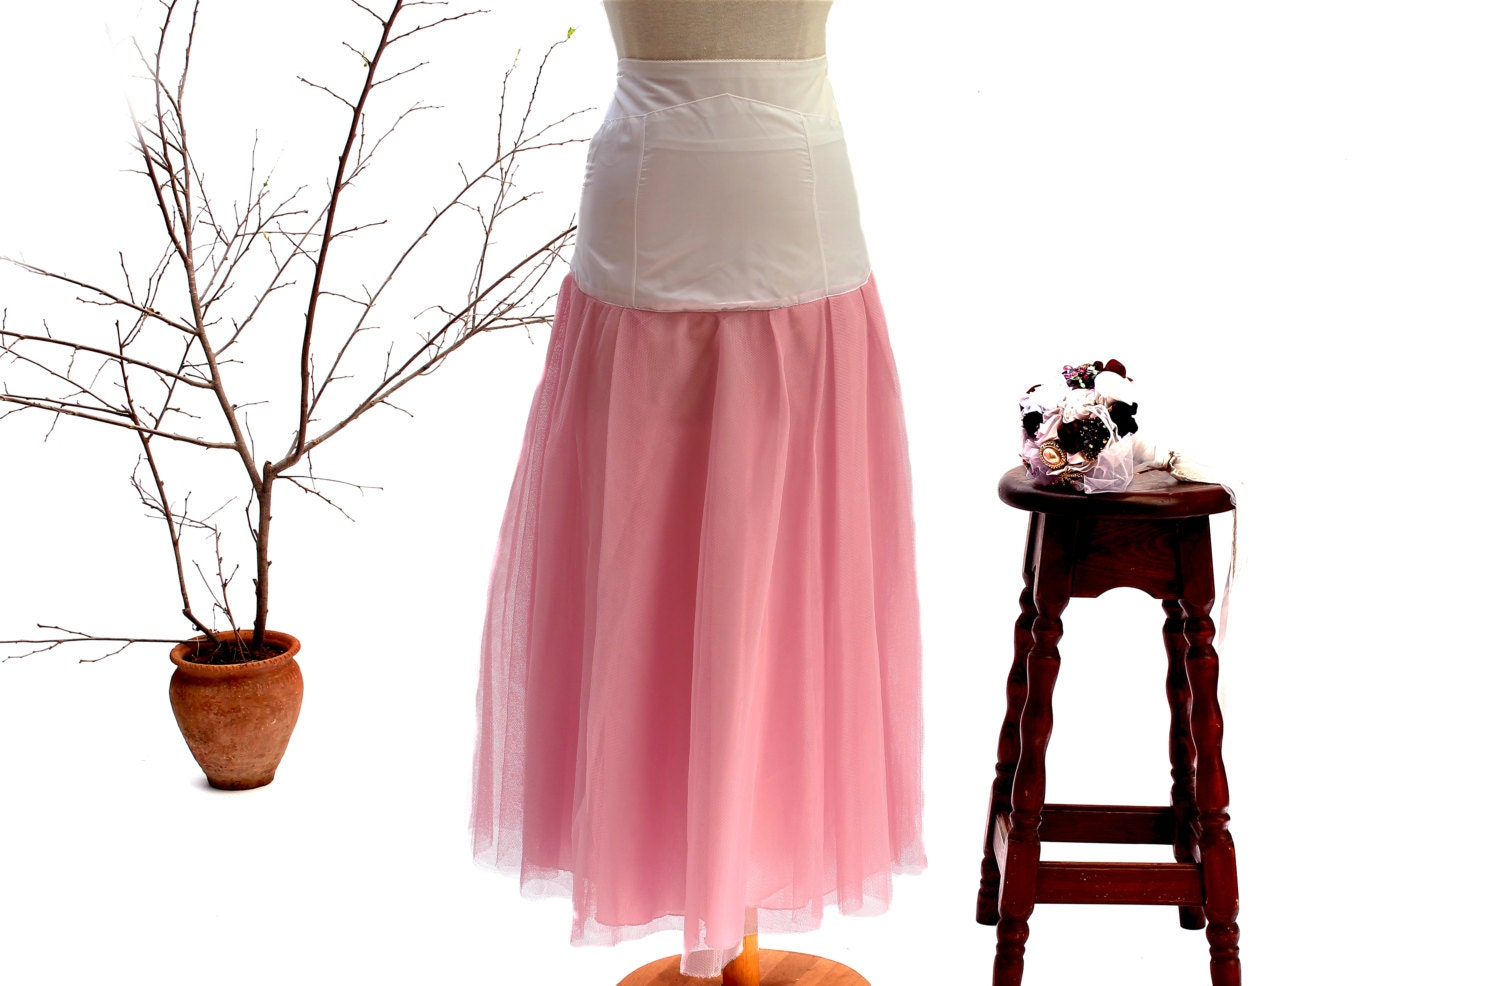 Pink tulle petticoat wedding crinoline bridal underskirt for Tulle petticoat for wedding dress